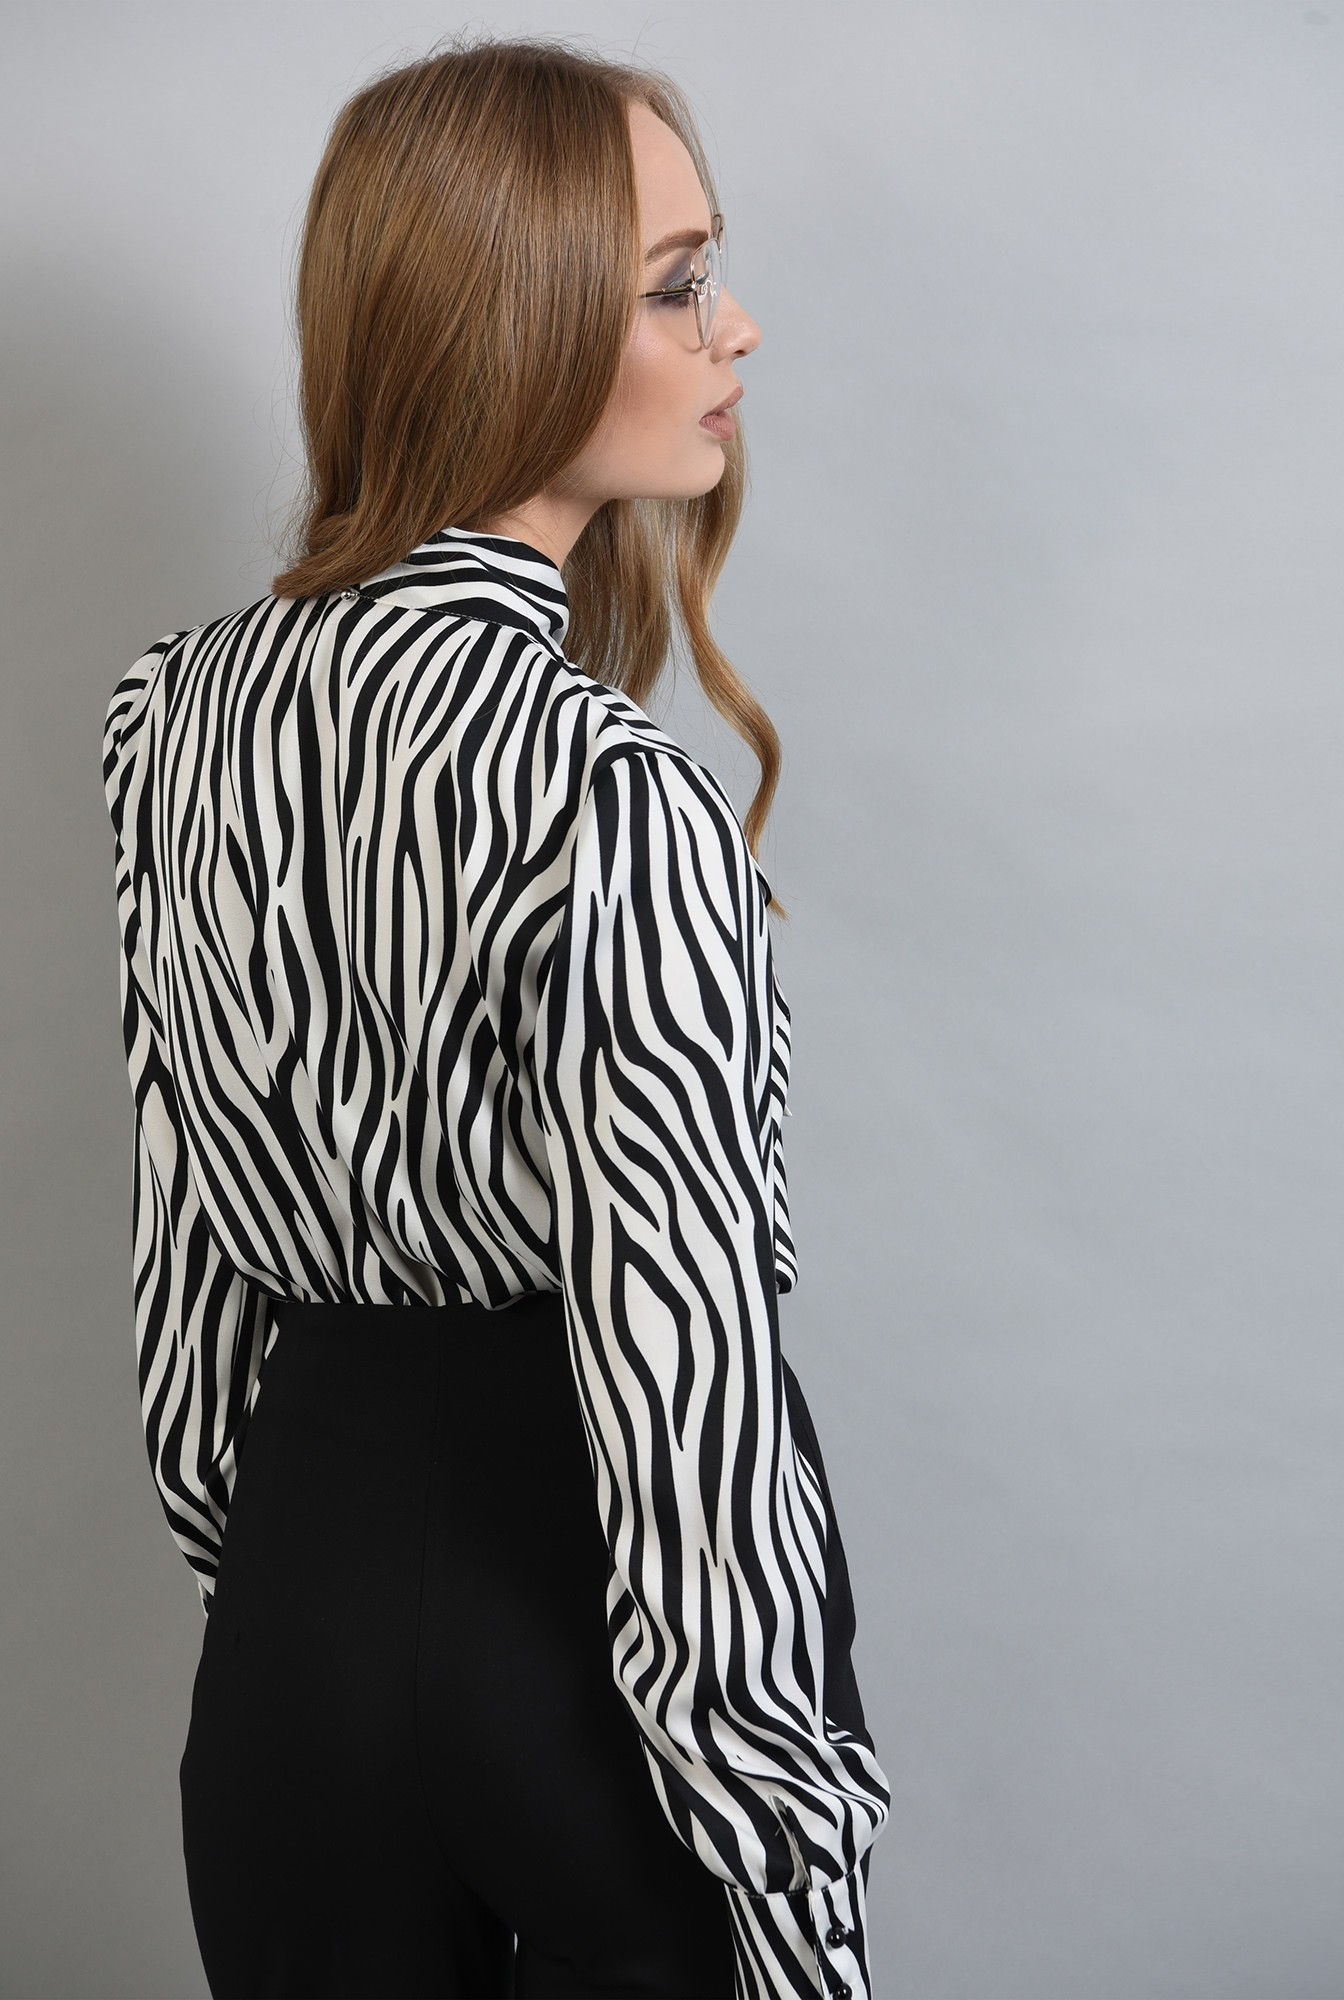 2 - bluza animal print, lejera